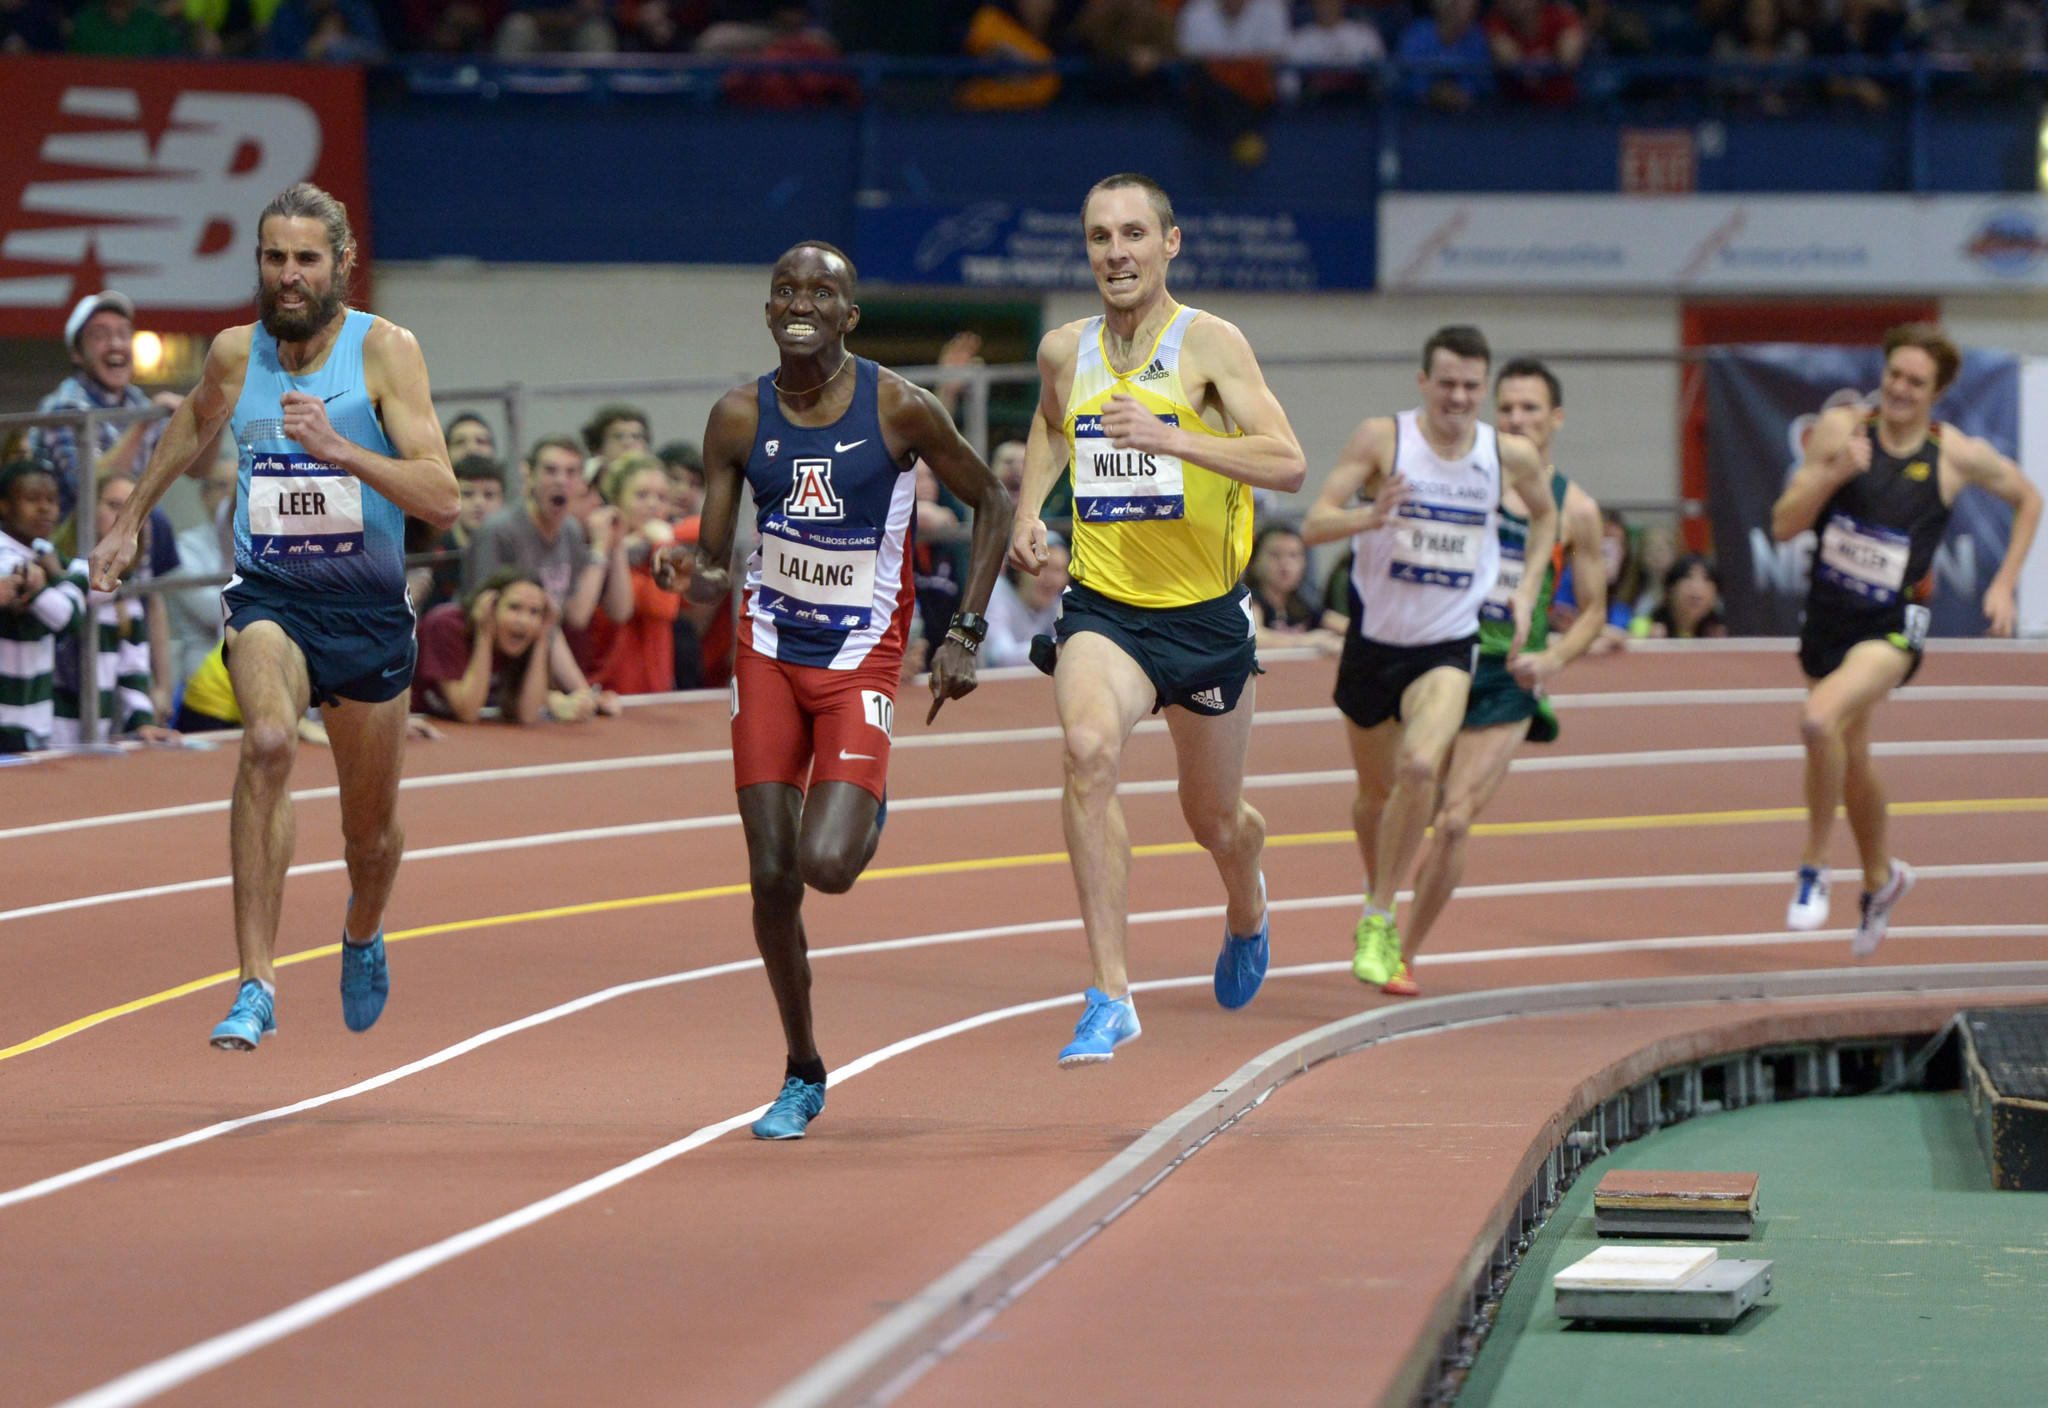 Feb 15, 2014; New York, NY, USA; Will Leer (USA) defeats Lawi Lalang of Arizona (KEN) and Nick Willis (NZL) to win the Wanamaker Mile in 3:52.47 in the 107th Millrose Games at The Armory. Mandatory Credit: Kirby Lee-USA TODAY Sports